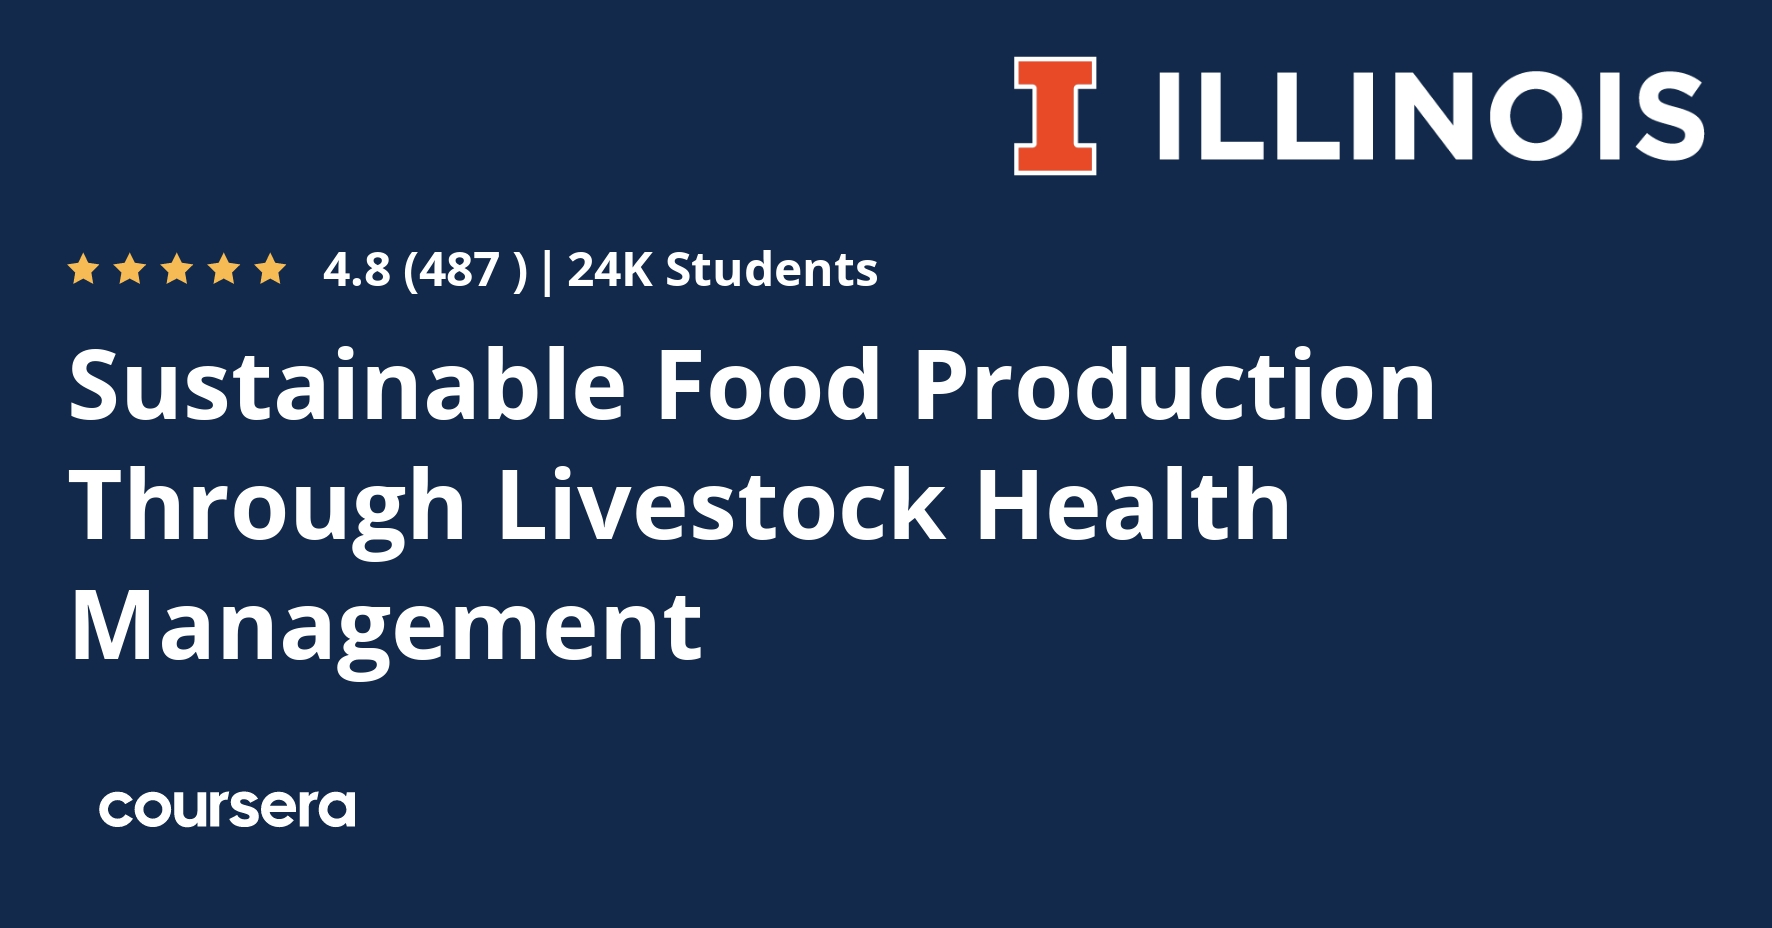 Sustainable Food Production Through Livestock Health Management